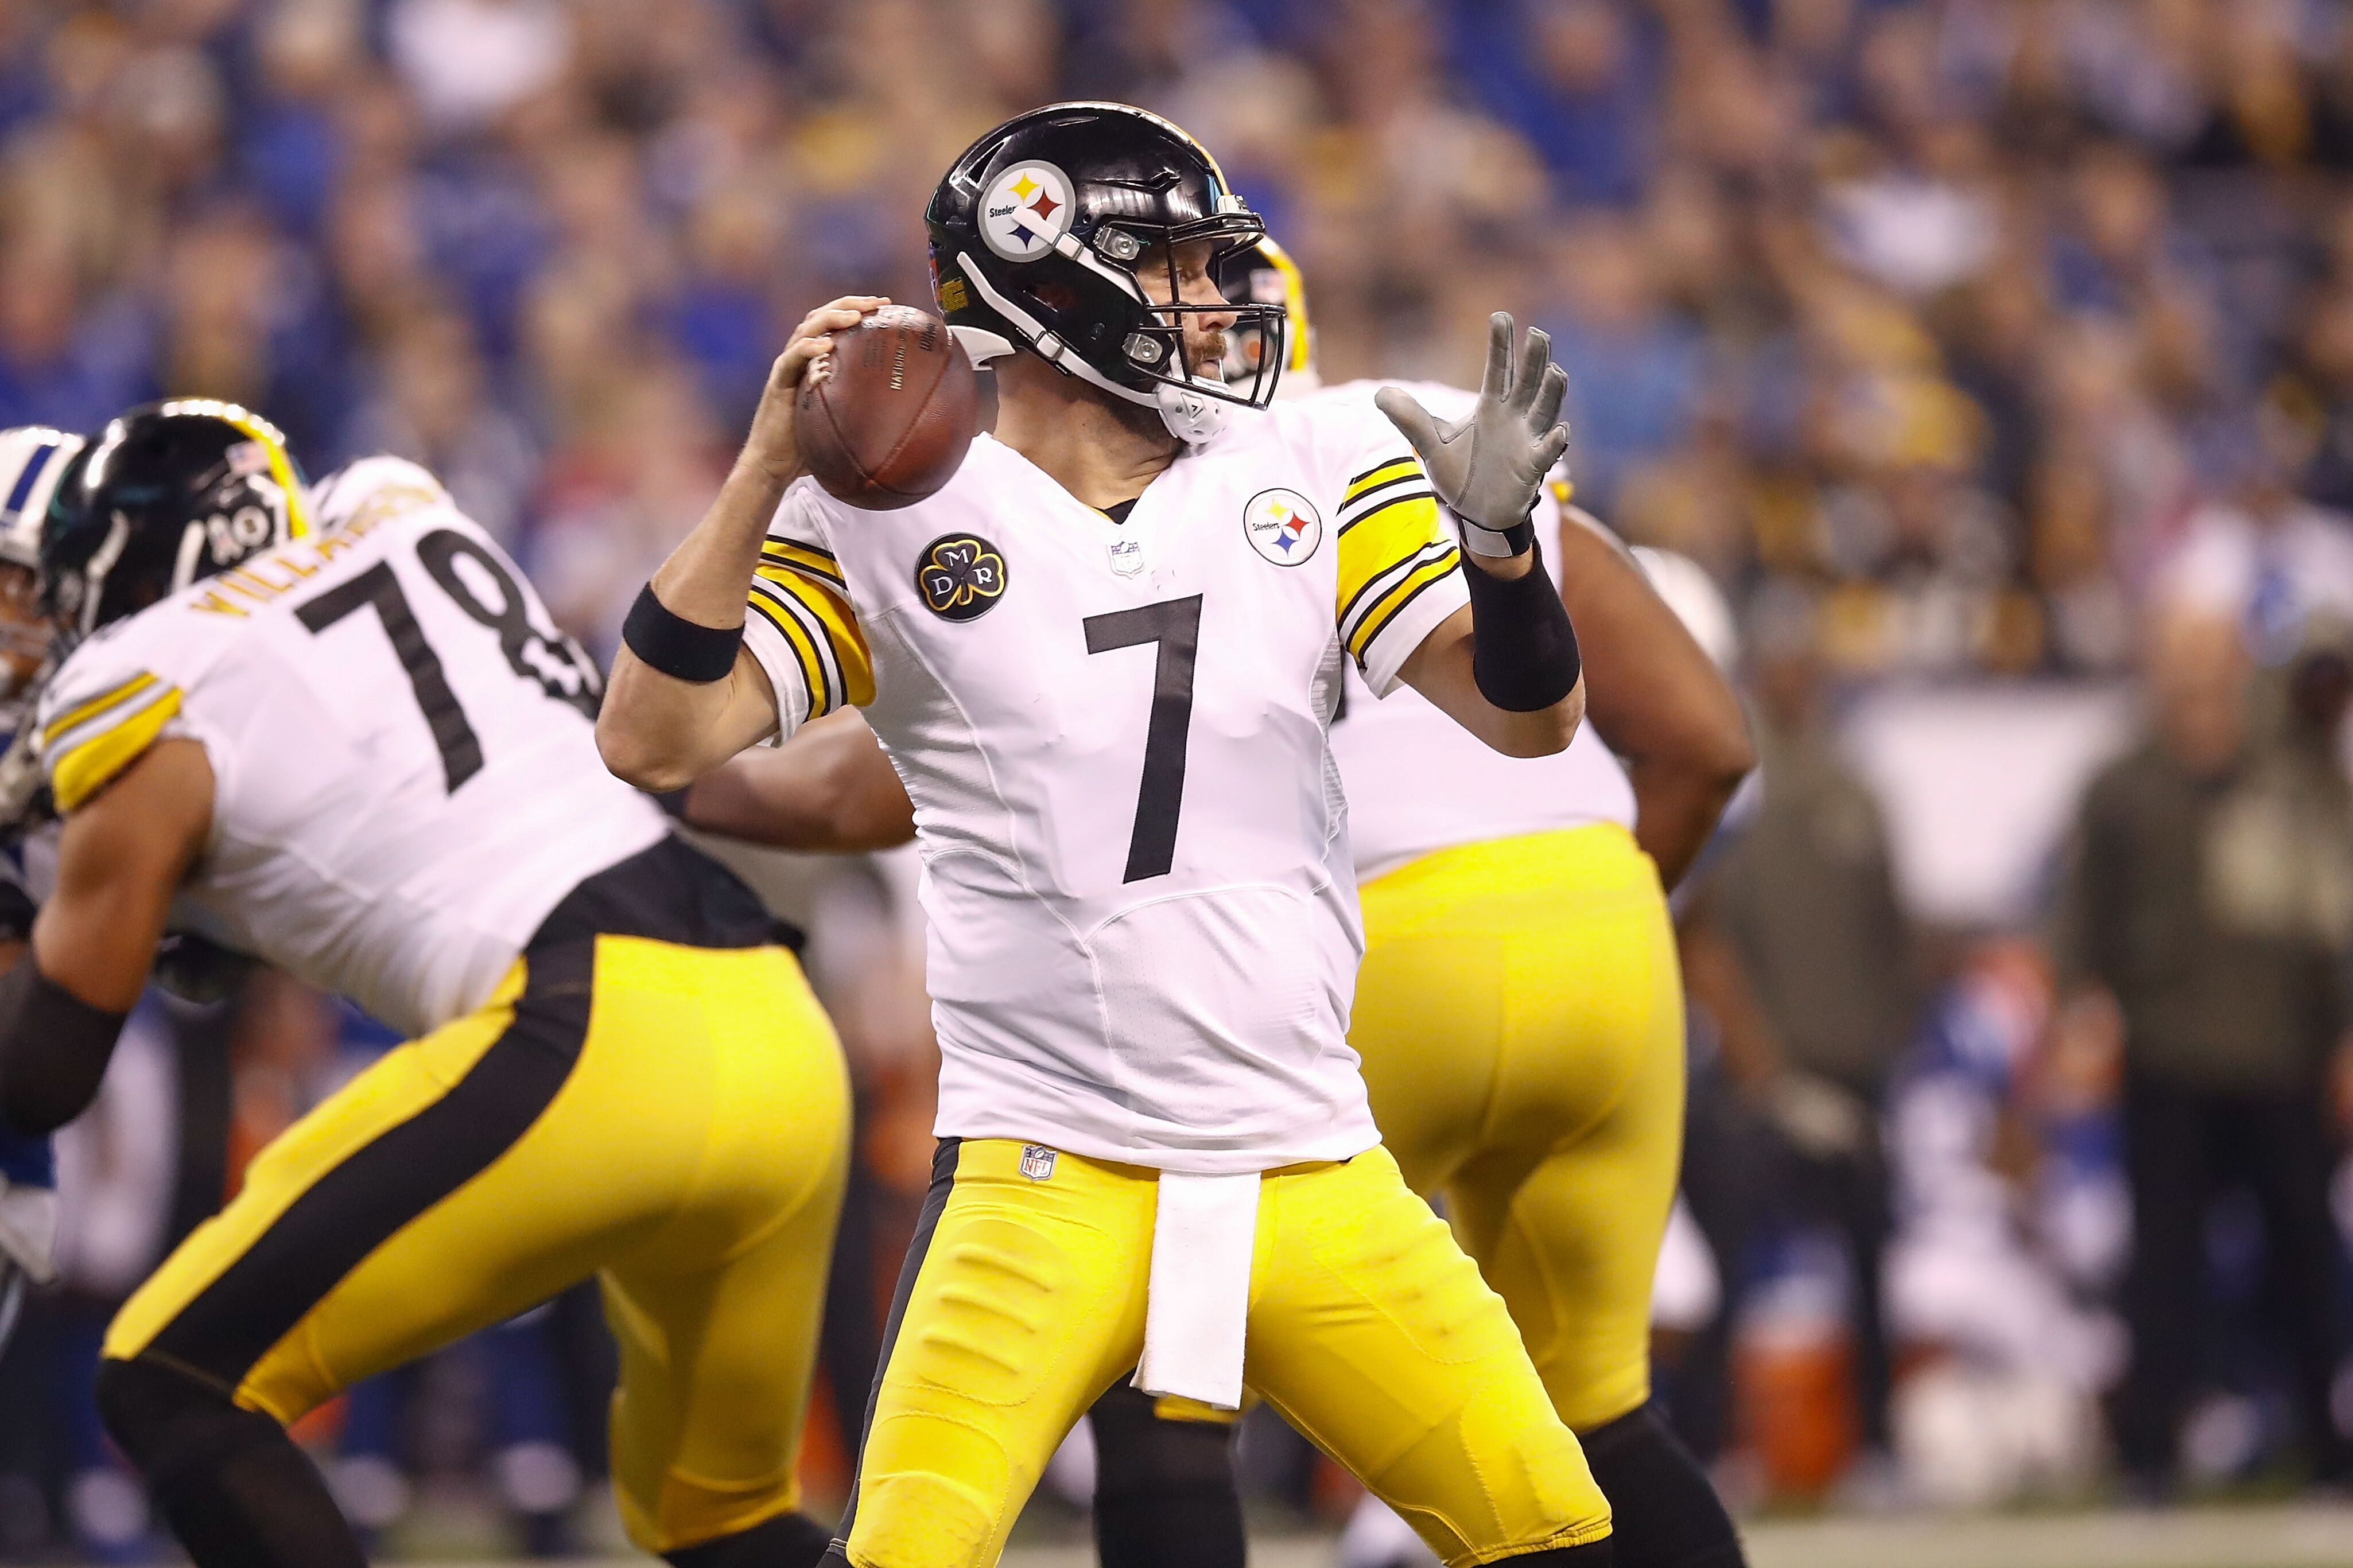 873292218-pittsburgh-steelers-v-indianapolis-colts.jpg